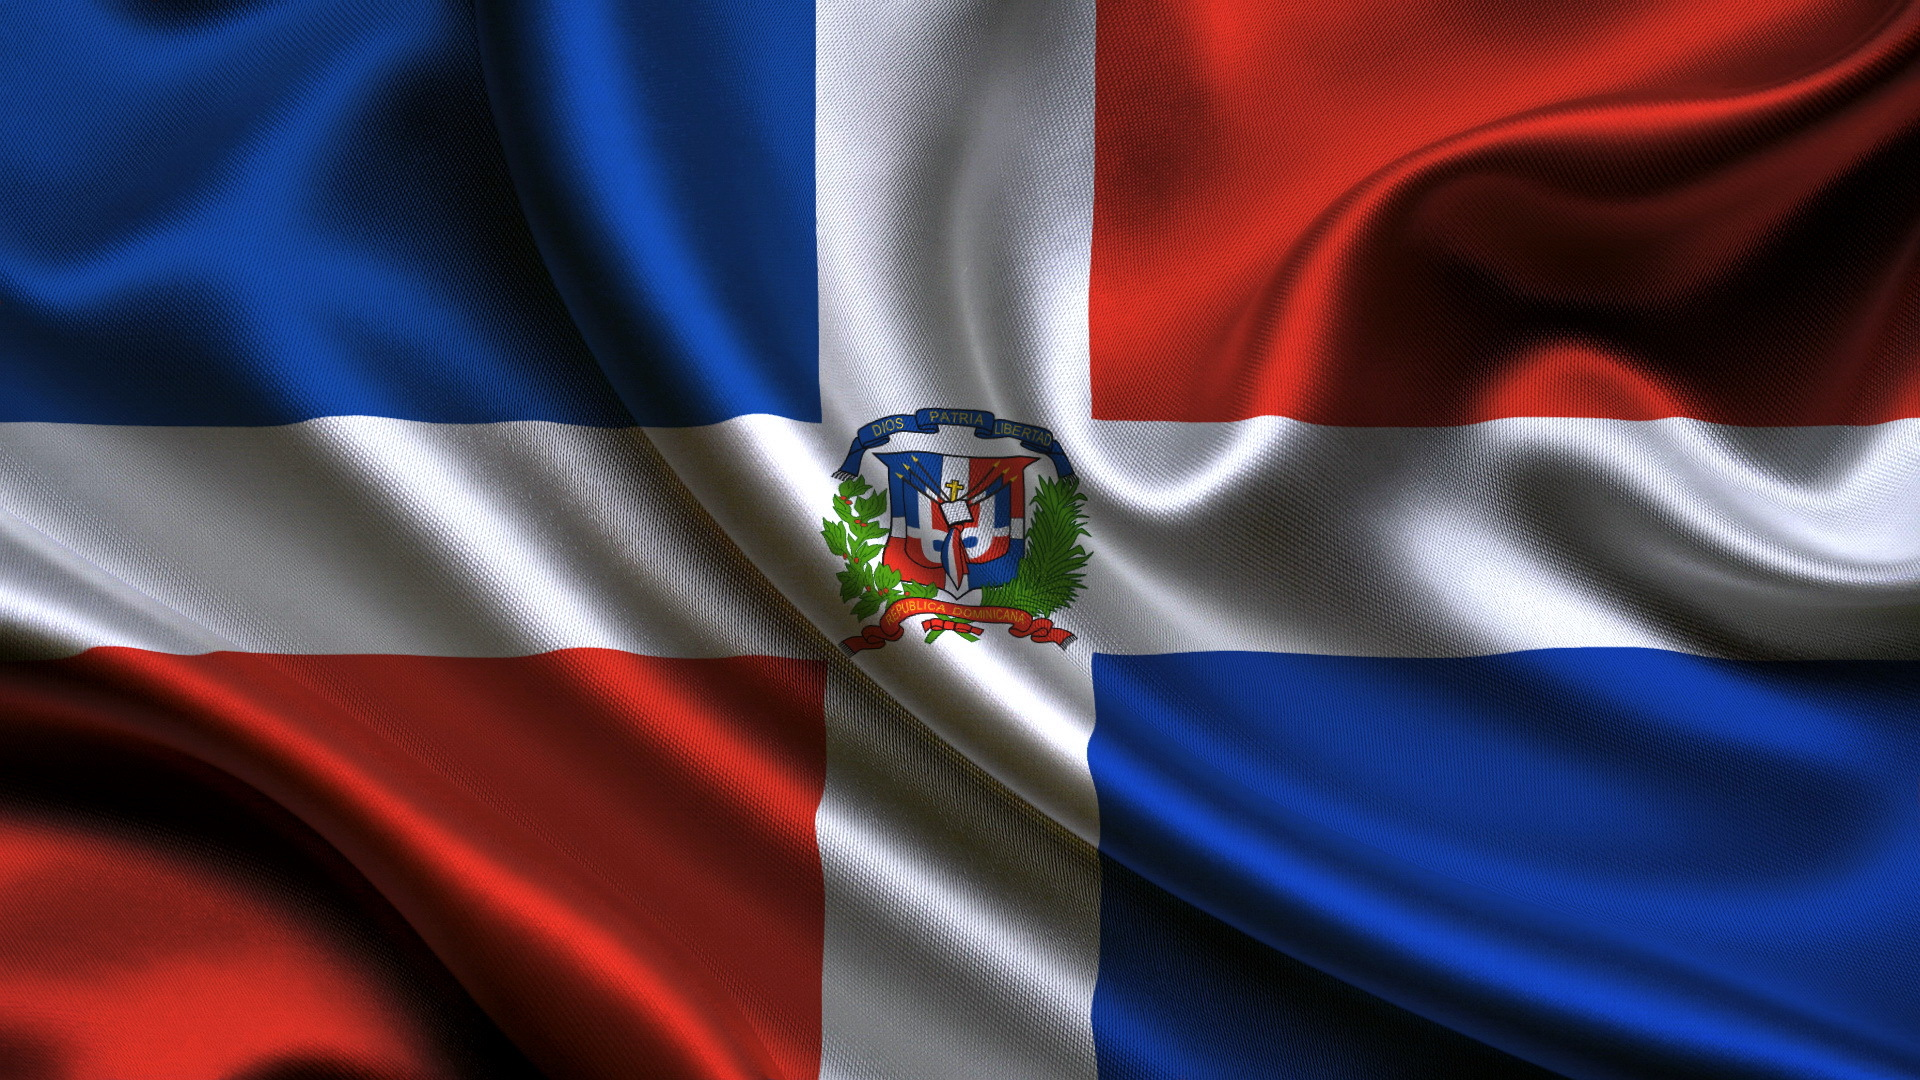 Images Dominican republic Flag 1920x1080 1920x1080